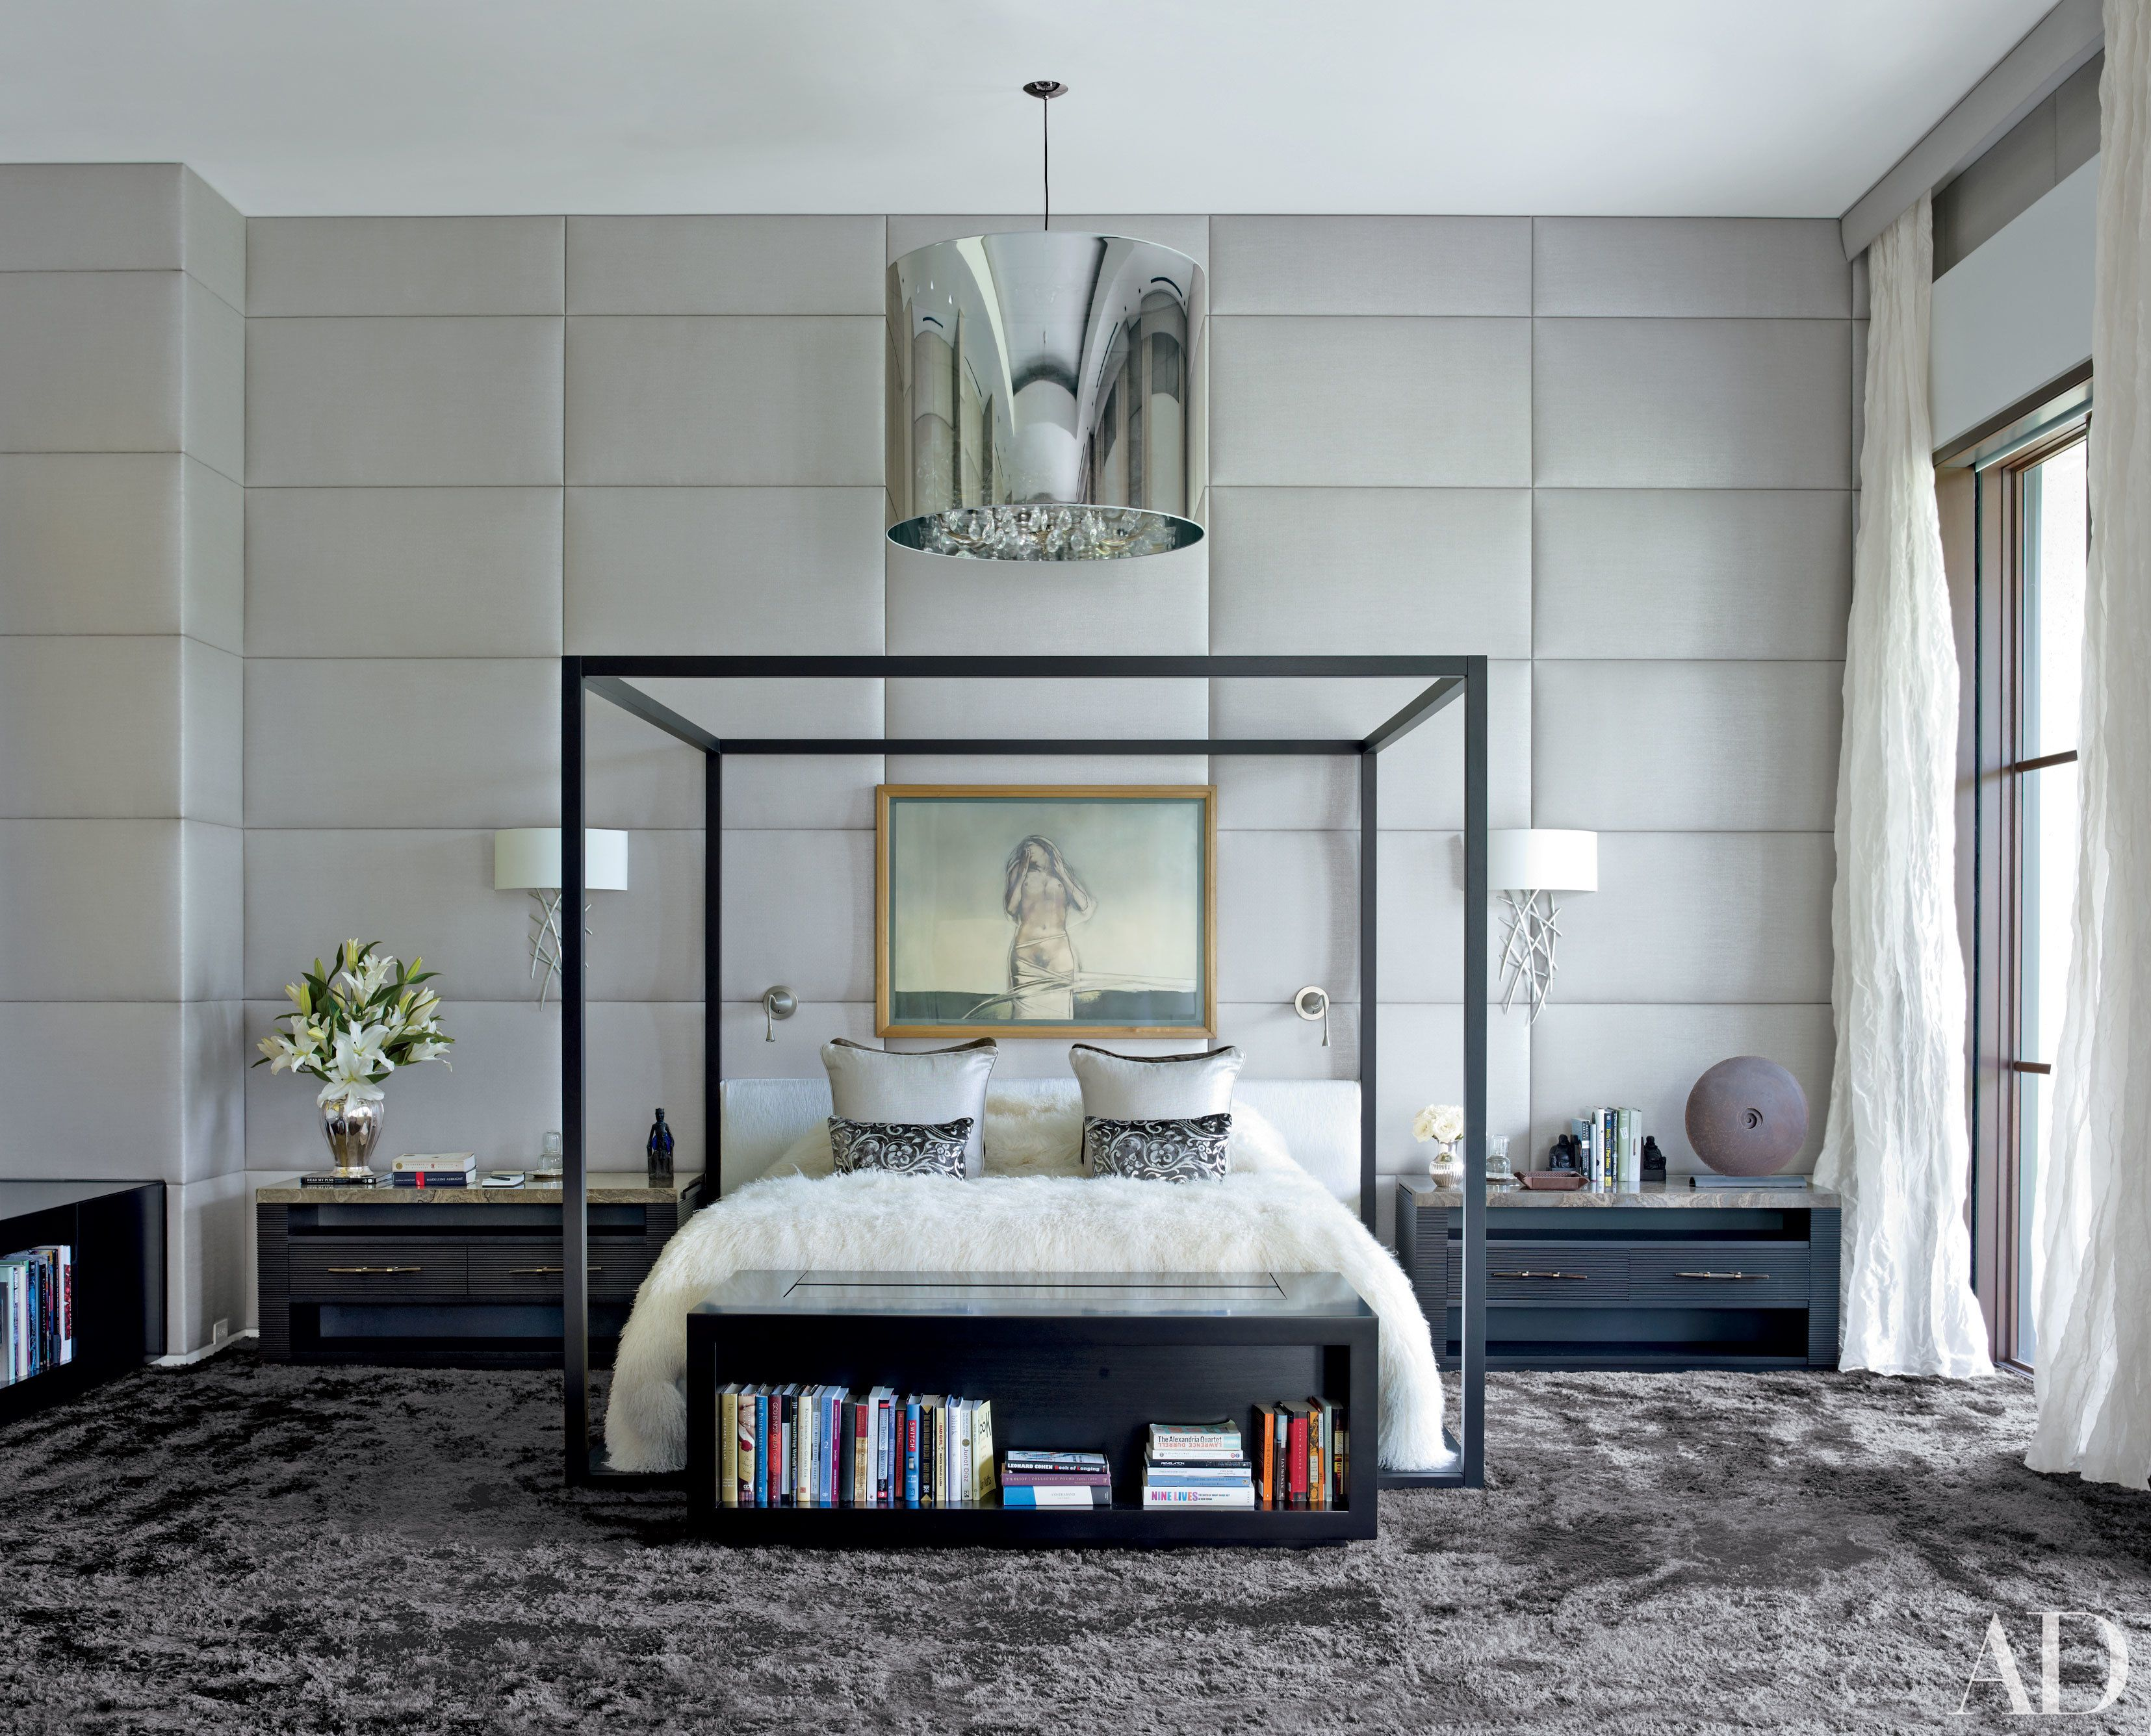 4 poster bedroom designs - Get Inspiration And Make The Chic Upgrade Why You Need A Four Poster Bed